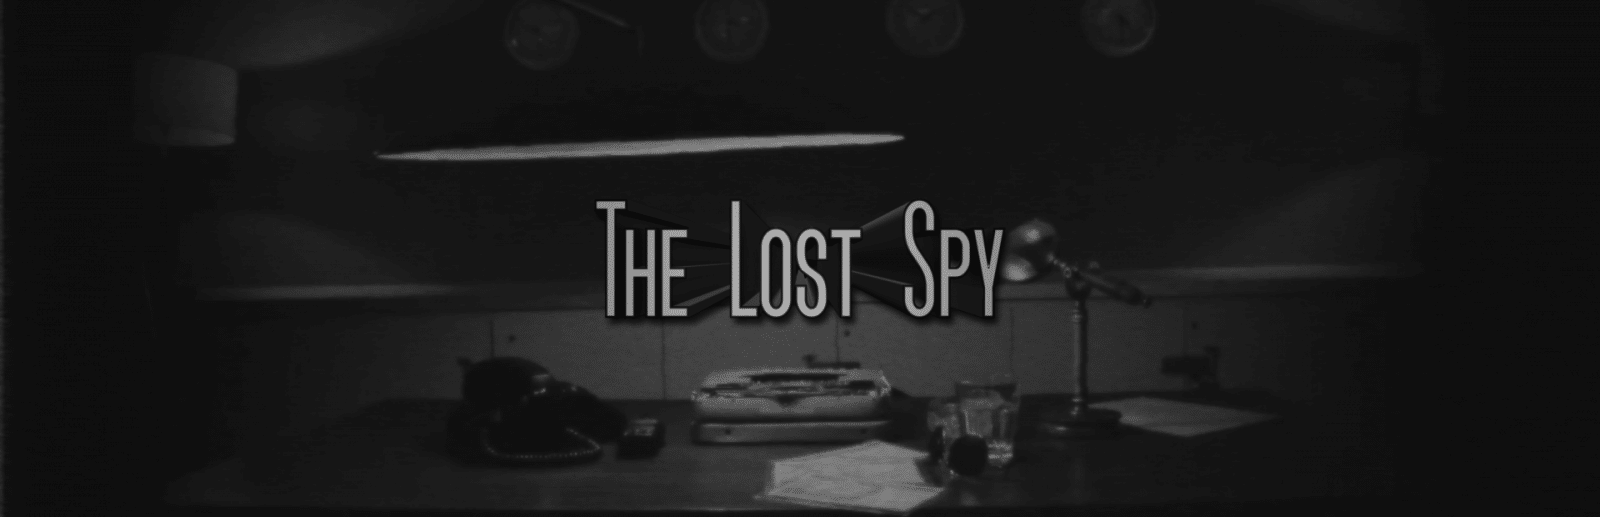 Lost Spy Game Banner displays game title text over a background of a desk with a typewriter, rotary phone and scattered papers.